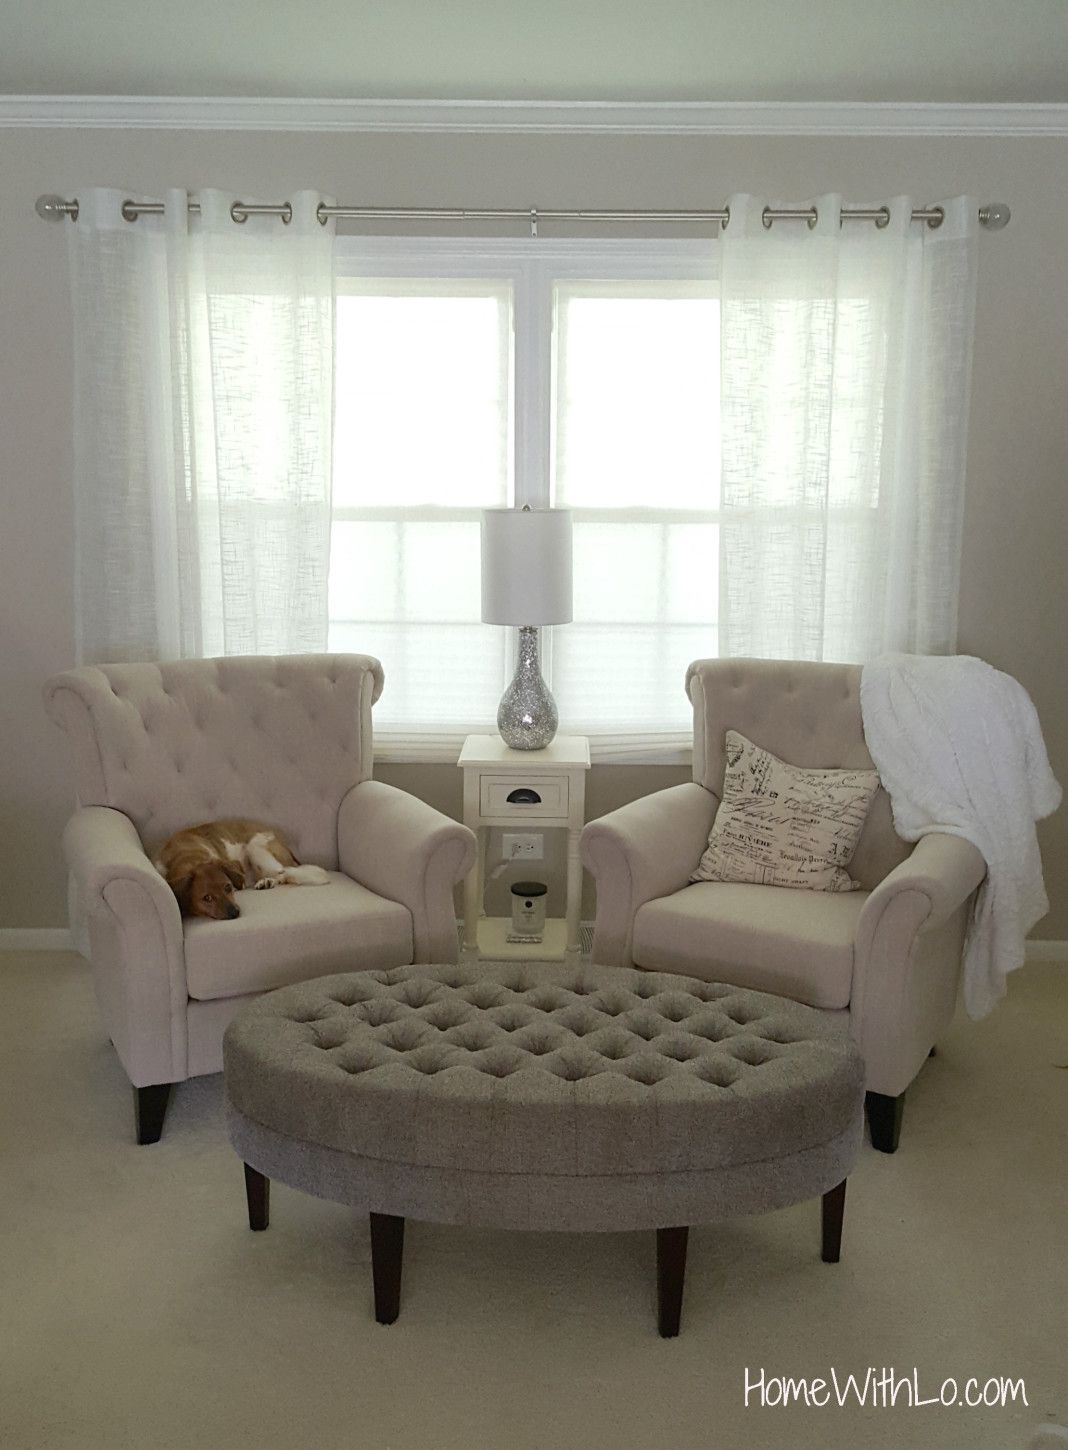 Double Tufted Arm Chairs With Ottoman For A Formal Sitting Room Great Little Reading